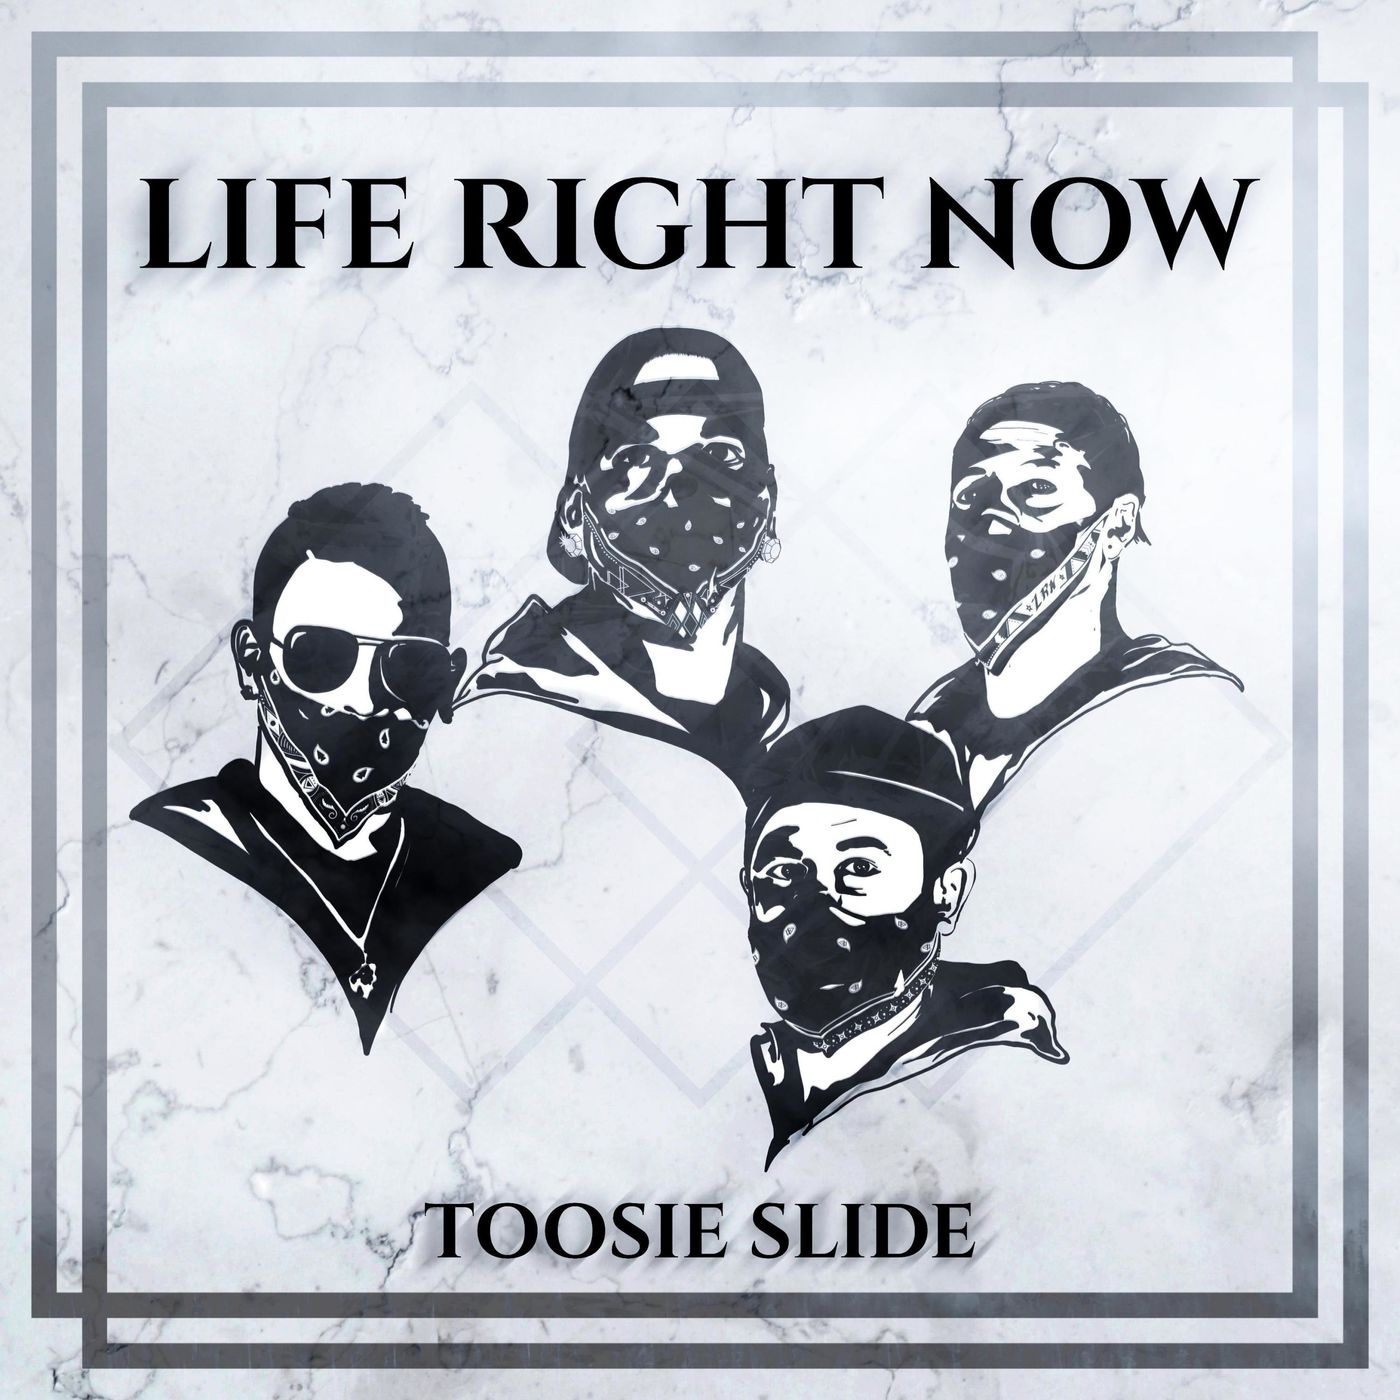 Life Right Now - Toosie Slide [single] (2020)